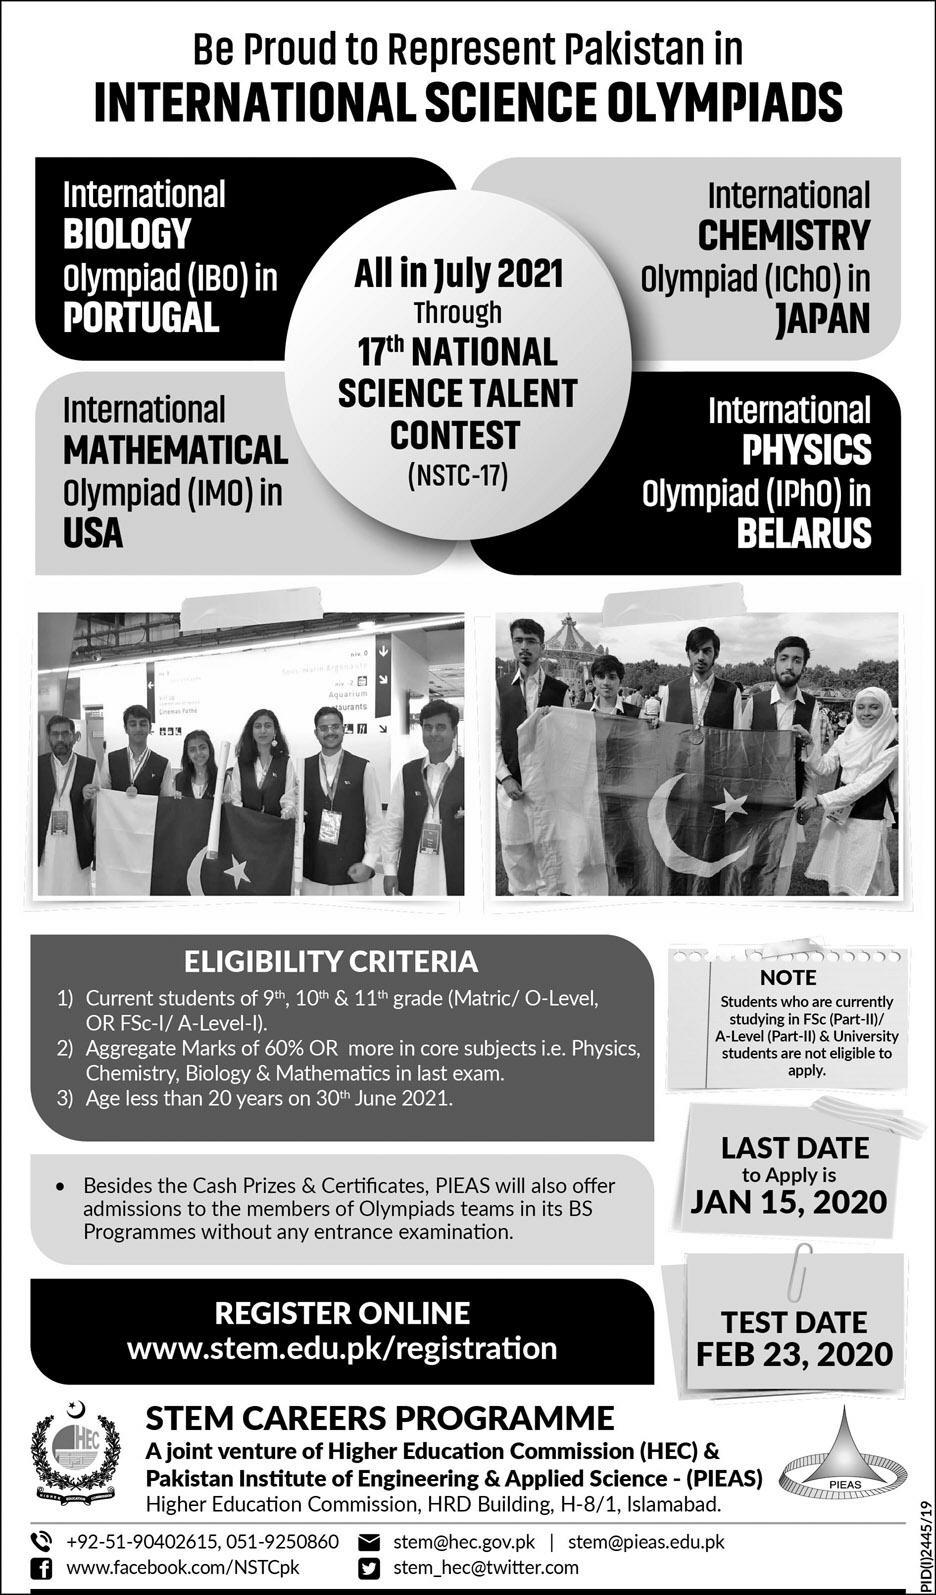 STEM 17th NATIONAL SCIENCE TALENT CONTEST